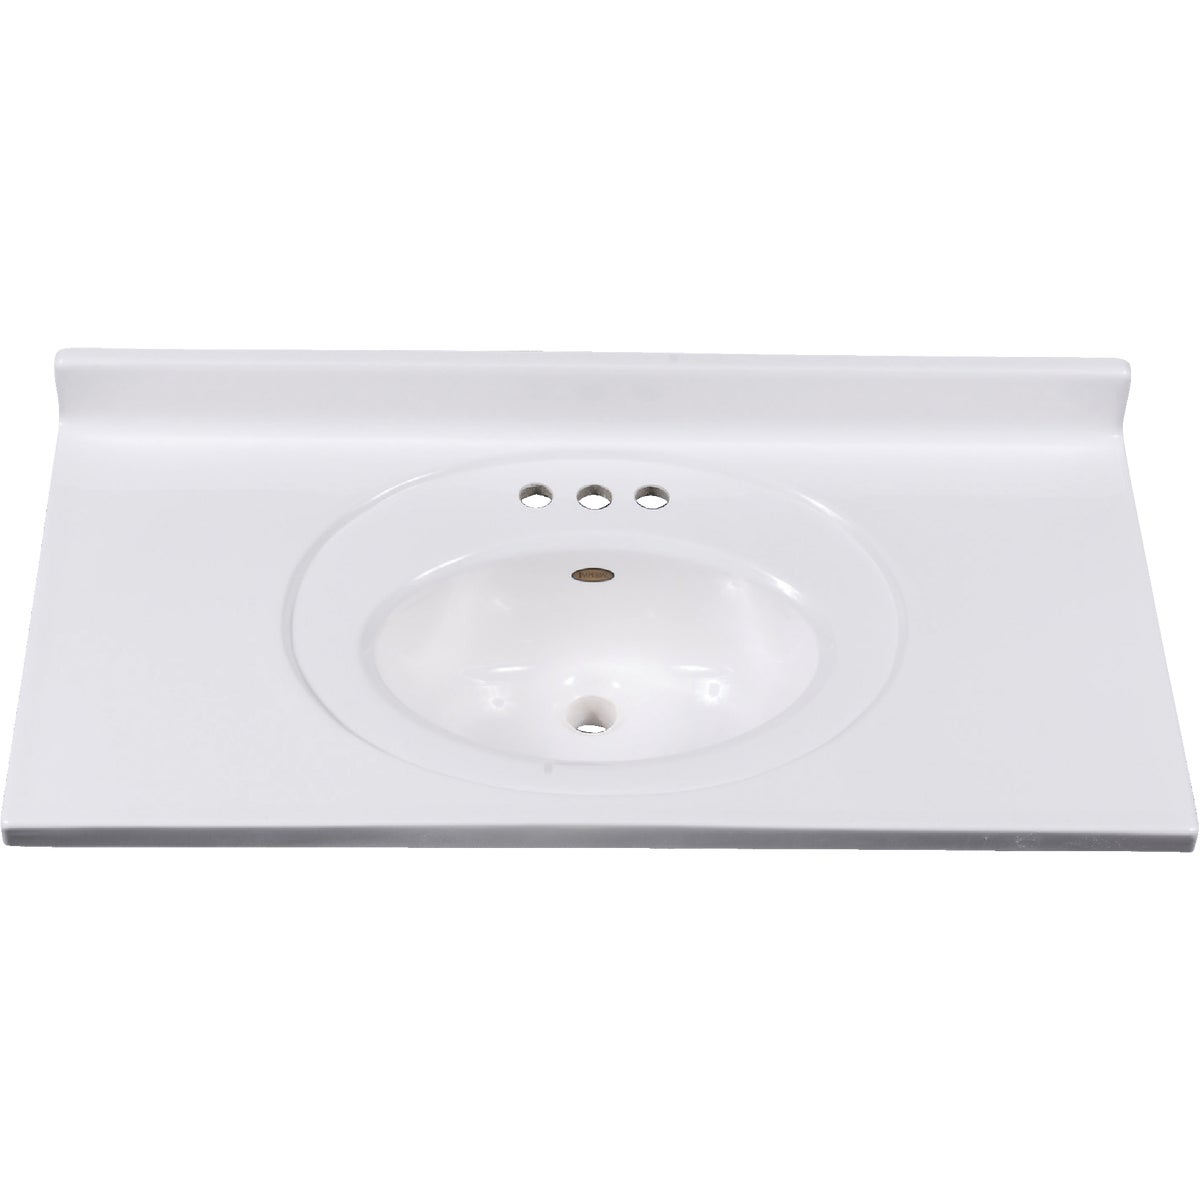 31X19 WHT VANITY TOP - VS3119SPW by Imperial Marble Corp